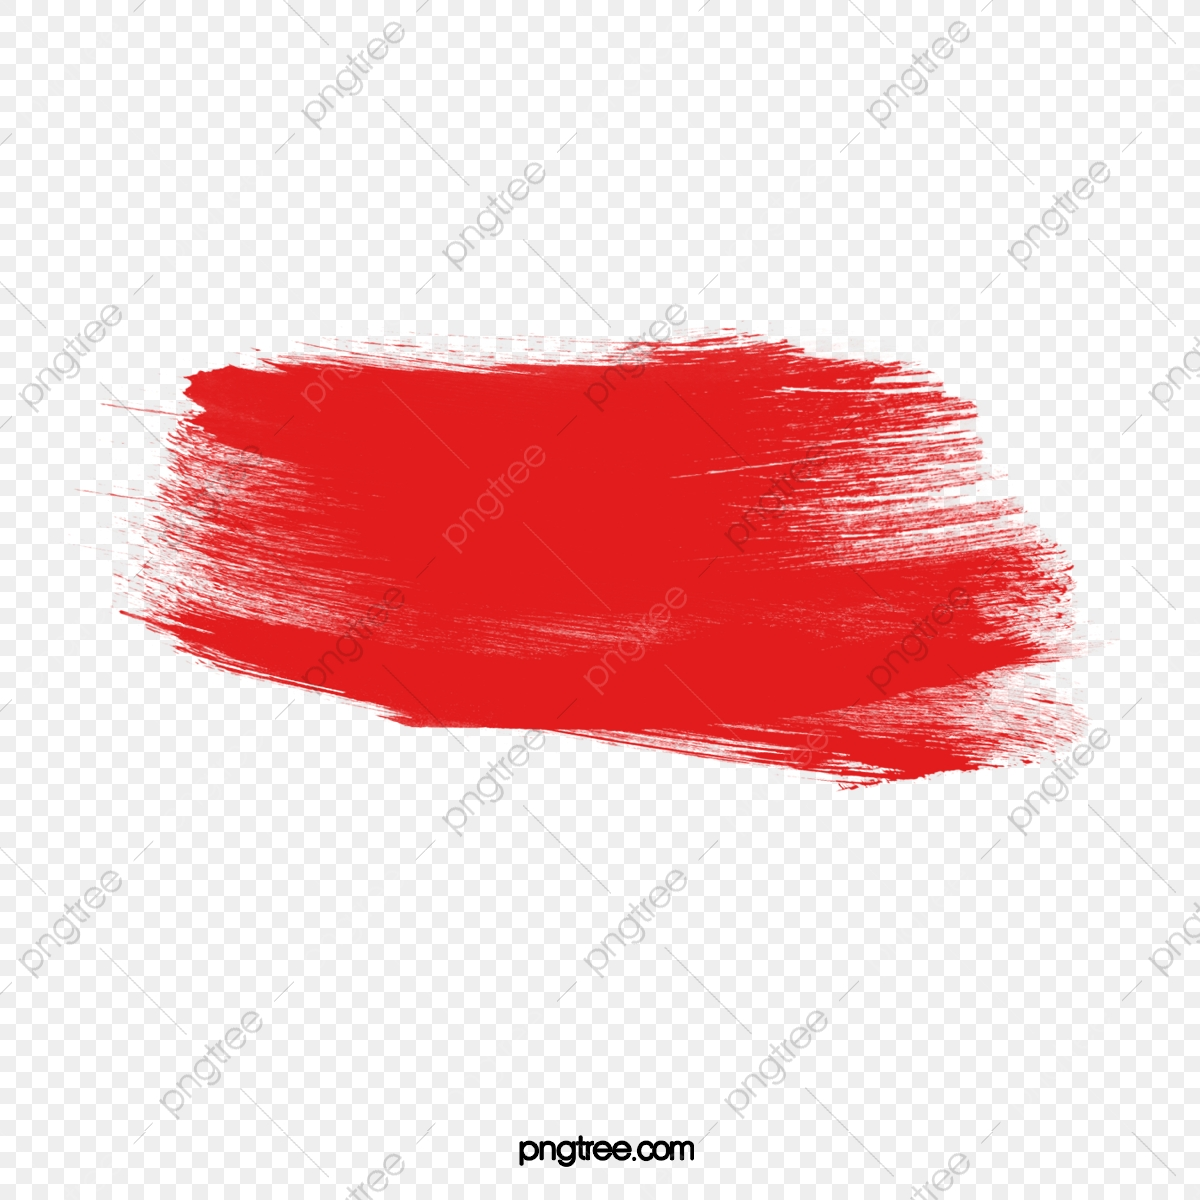 Brush Painting Red Pattern, Brush Clipart, Painting Brush ... graphic library download